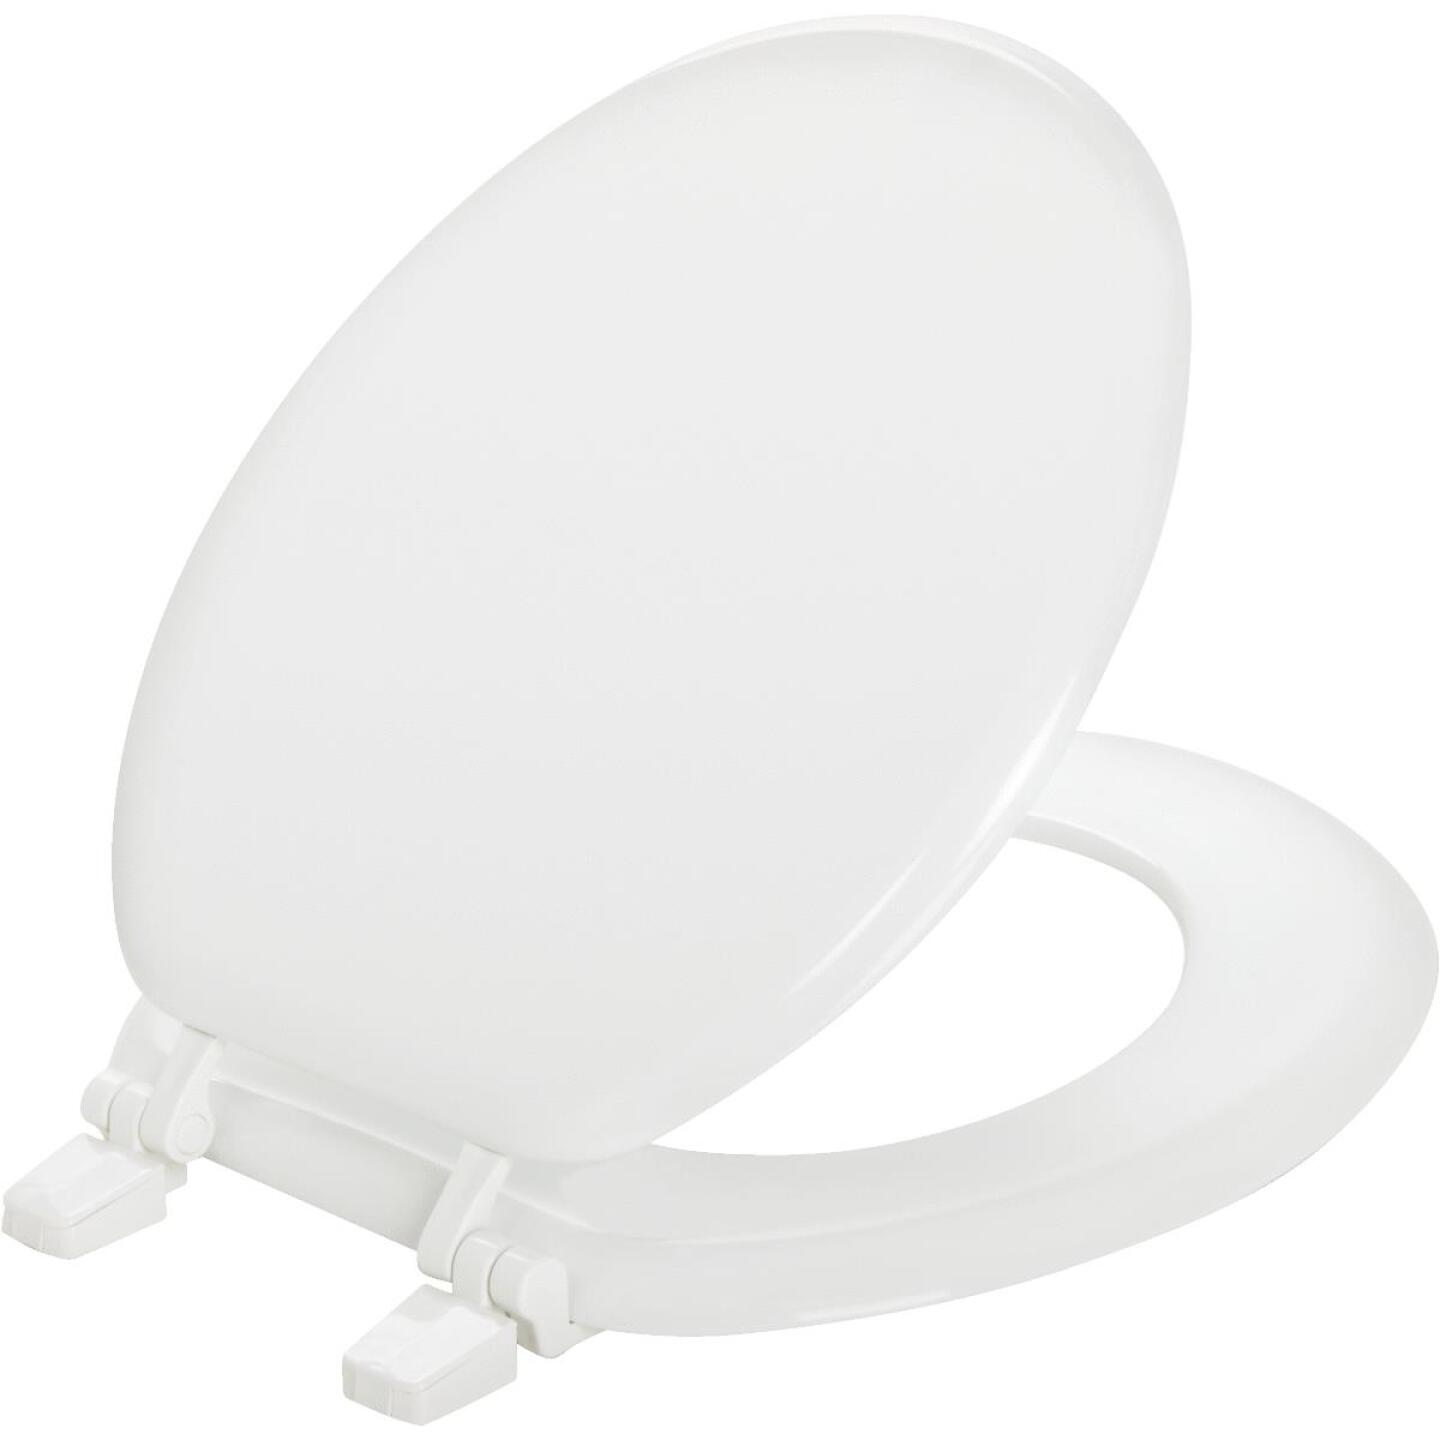 Mayfair Round Closed Front White Wood Toilet Seat Image 1